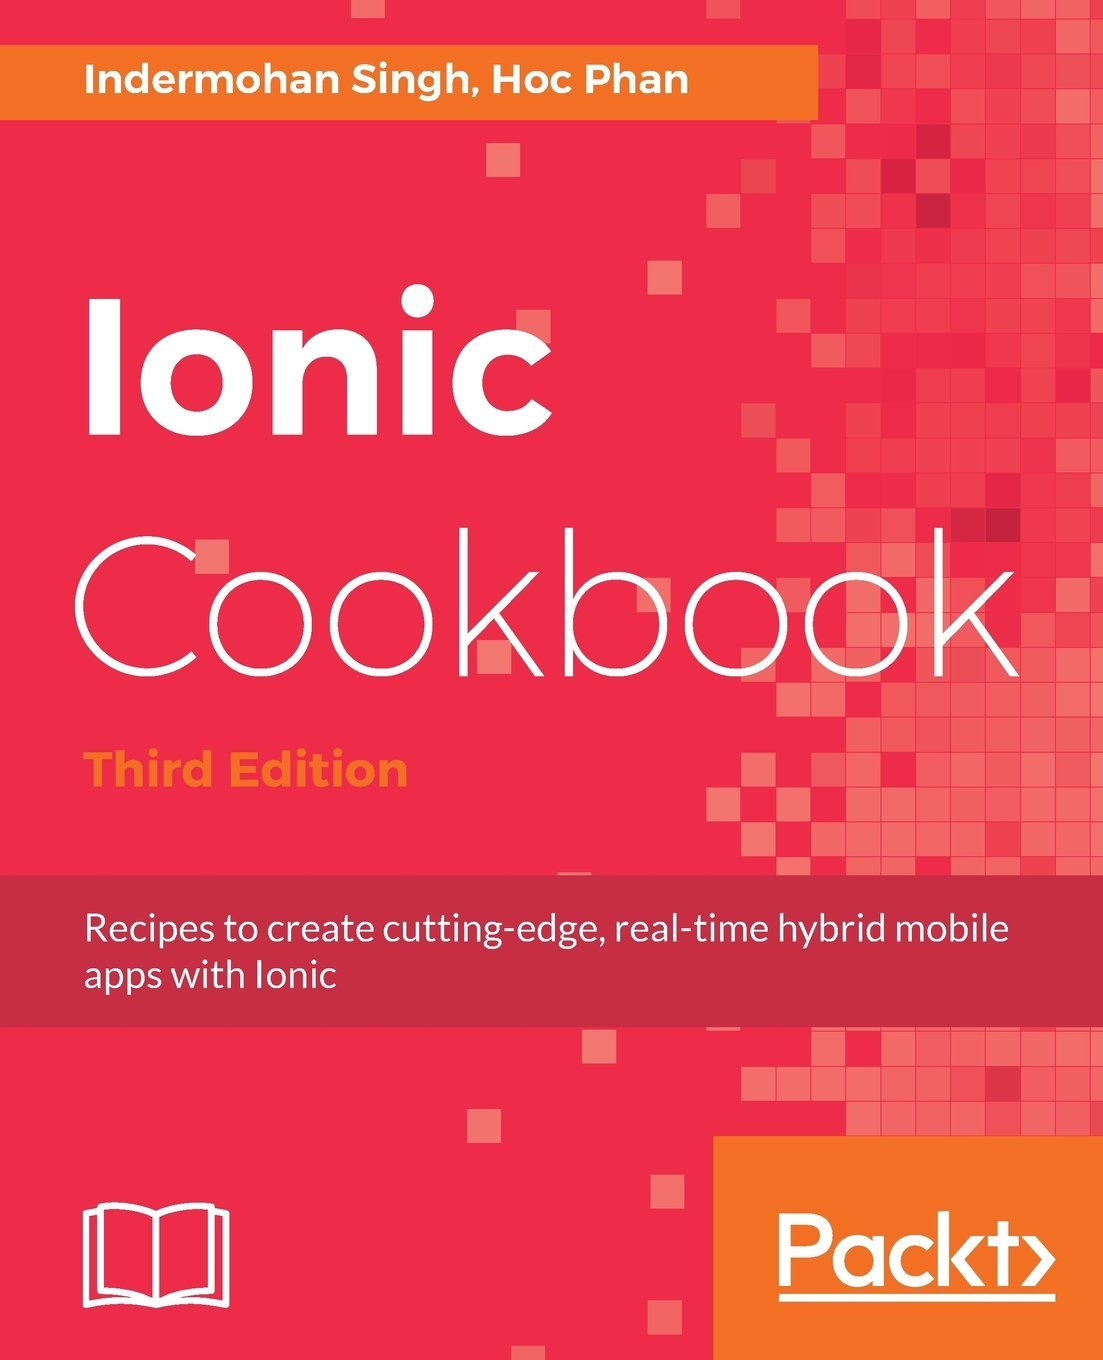 Ionic Cookbook: Recipes to create cutting-edge, real-time